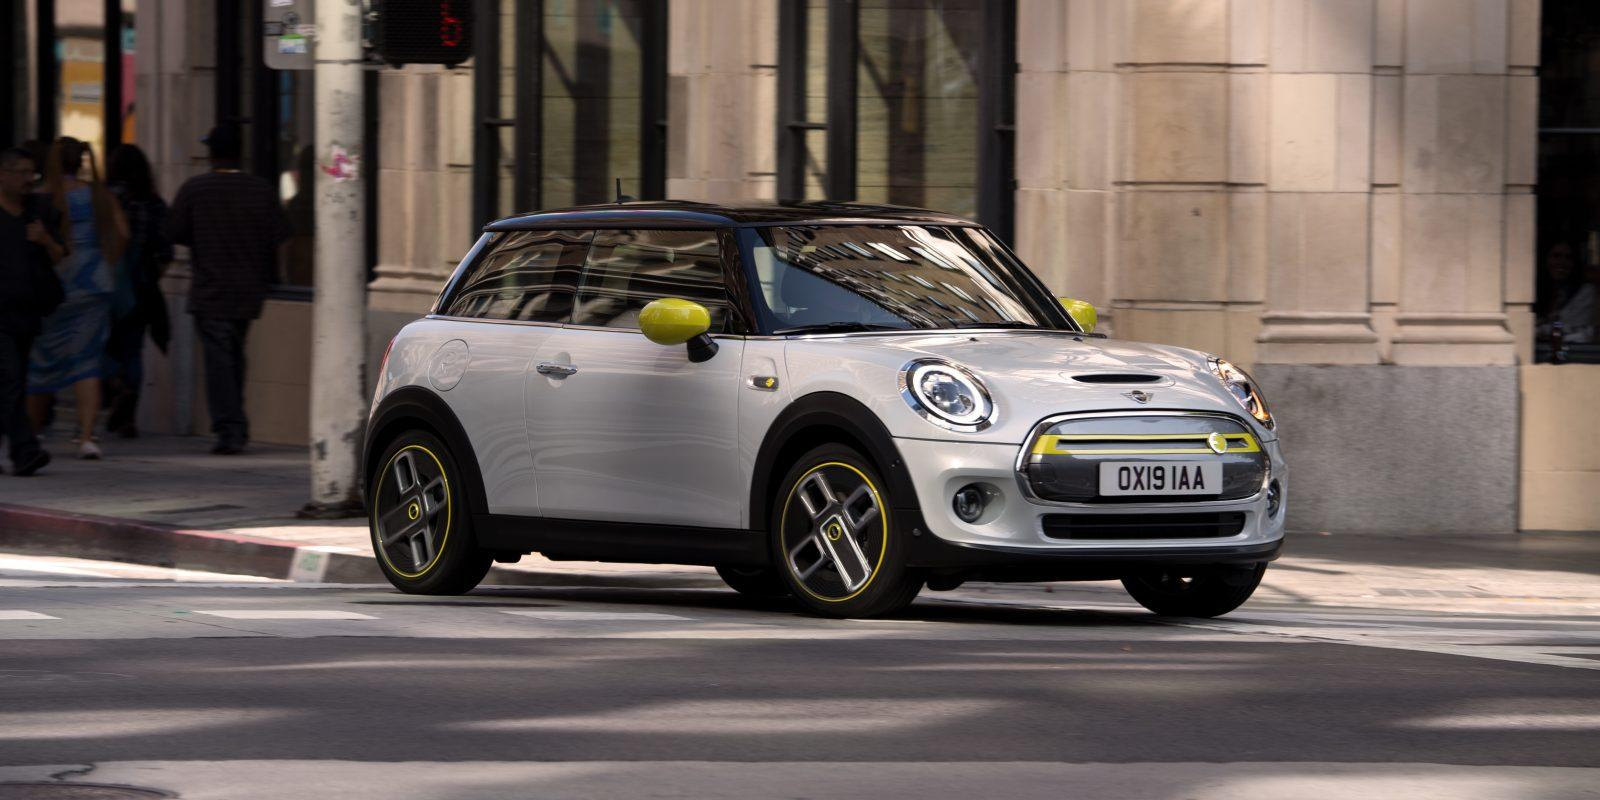 The electric Mini will be available in South Africa before the end of the year.